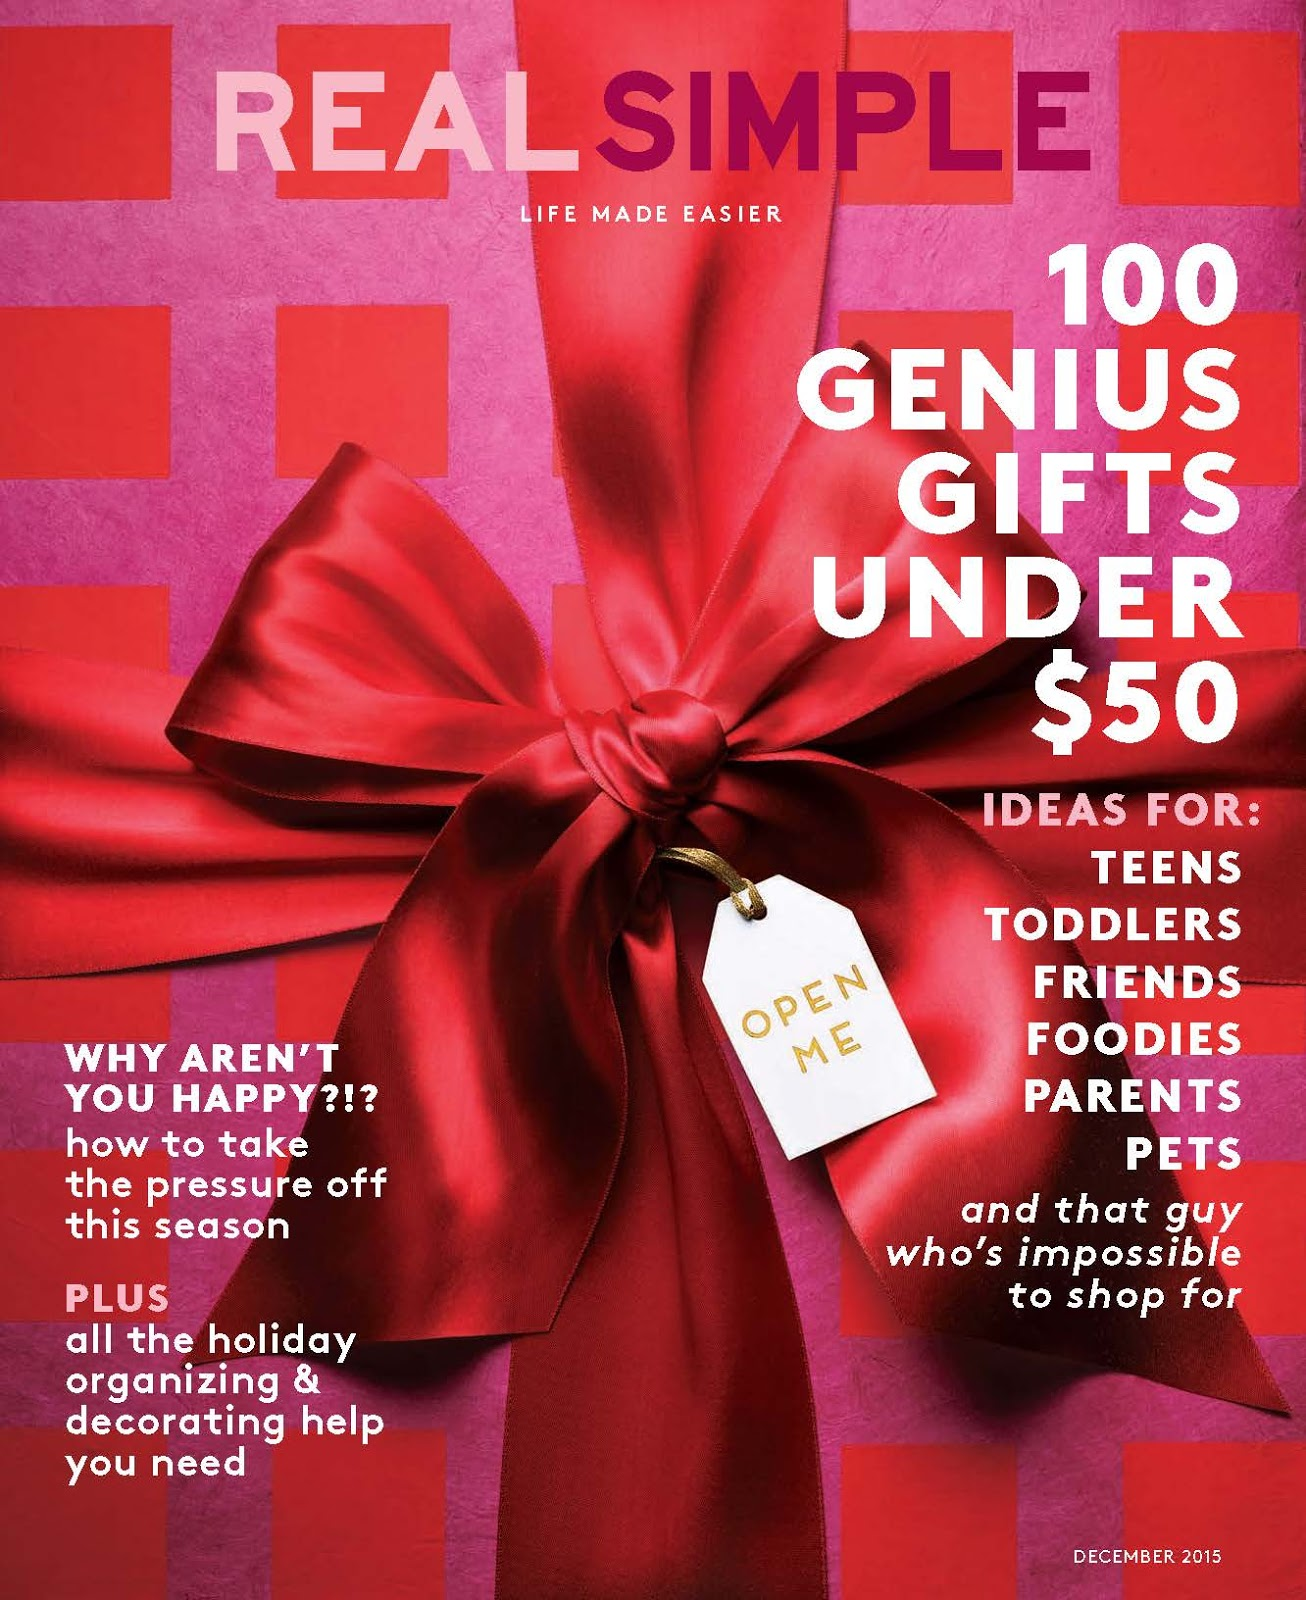 Real simple christmas gift ideas